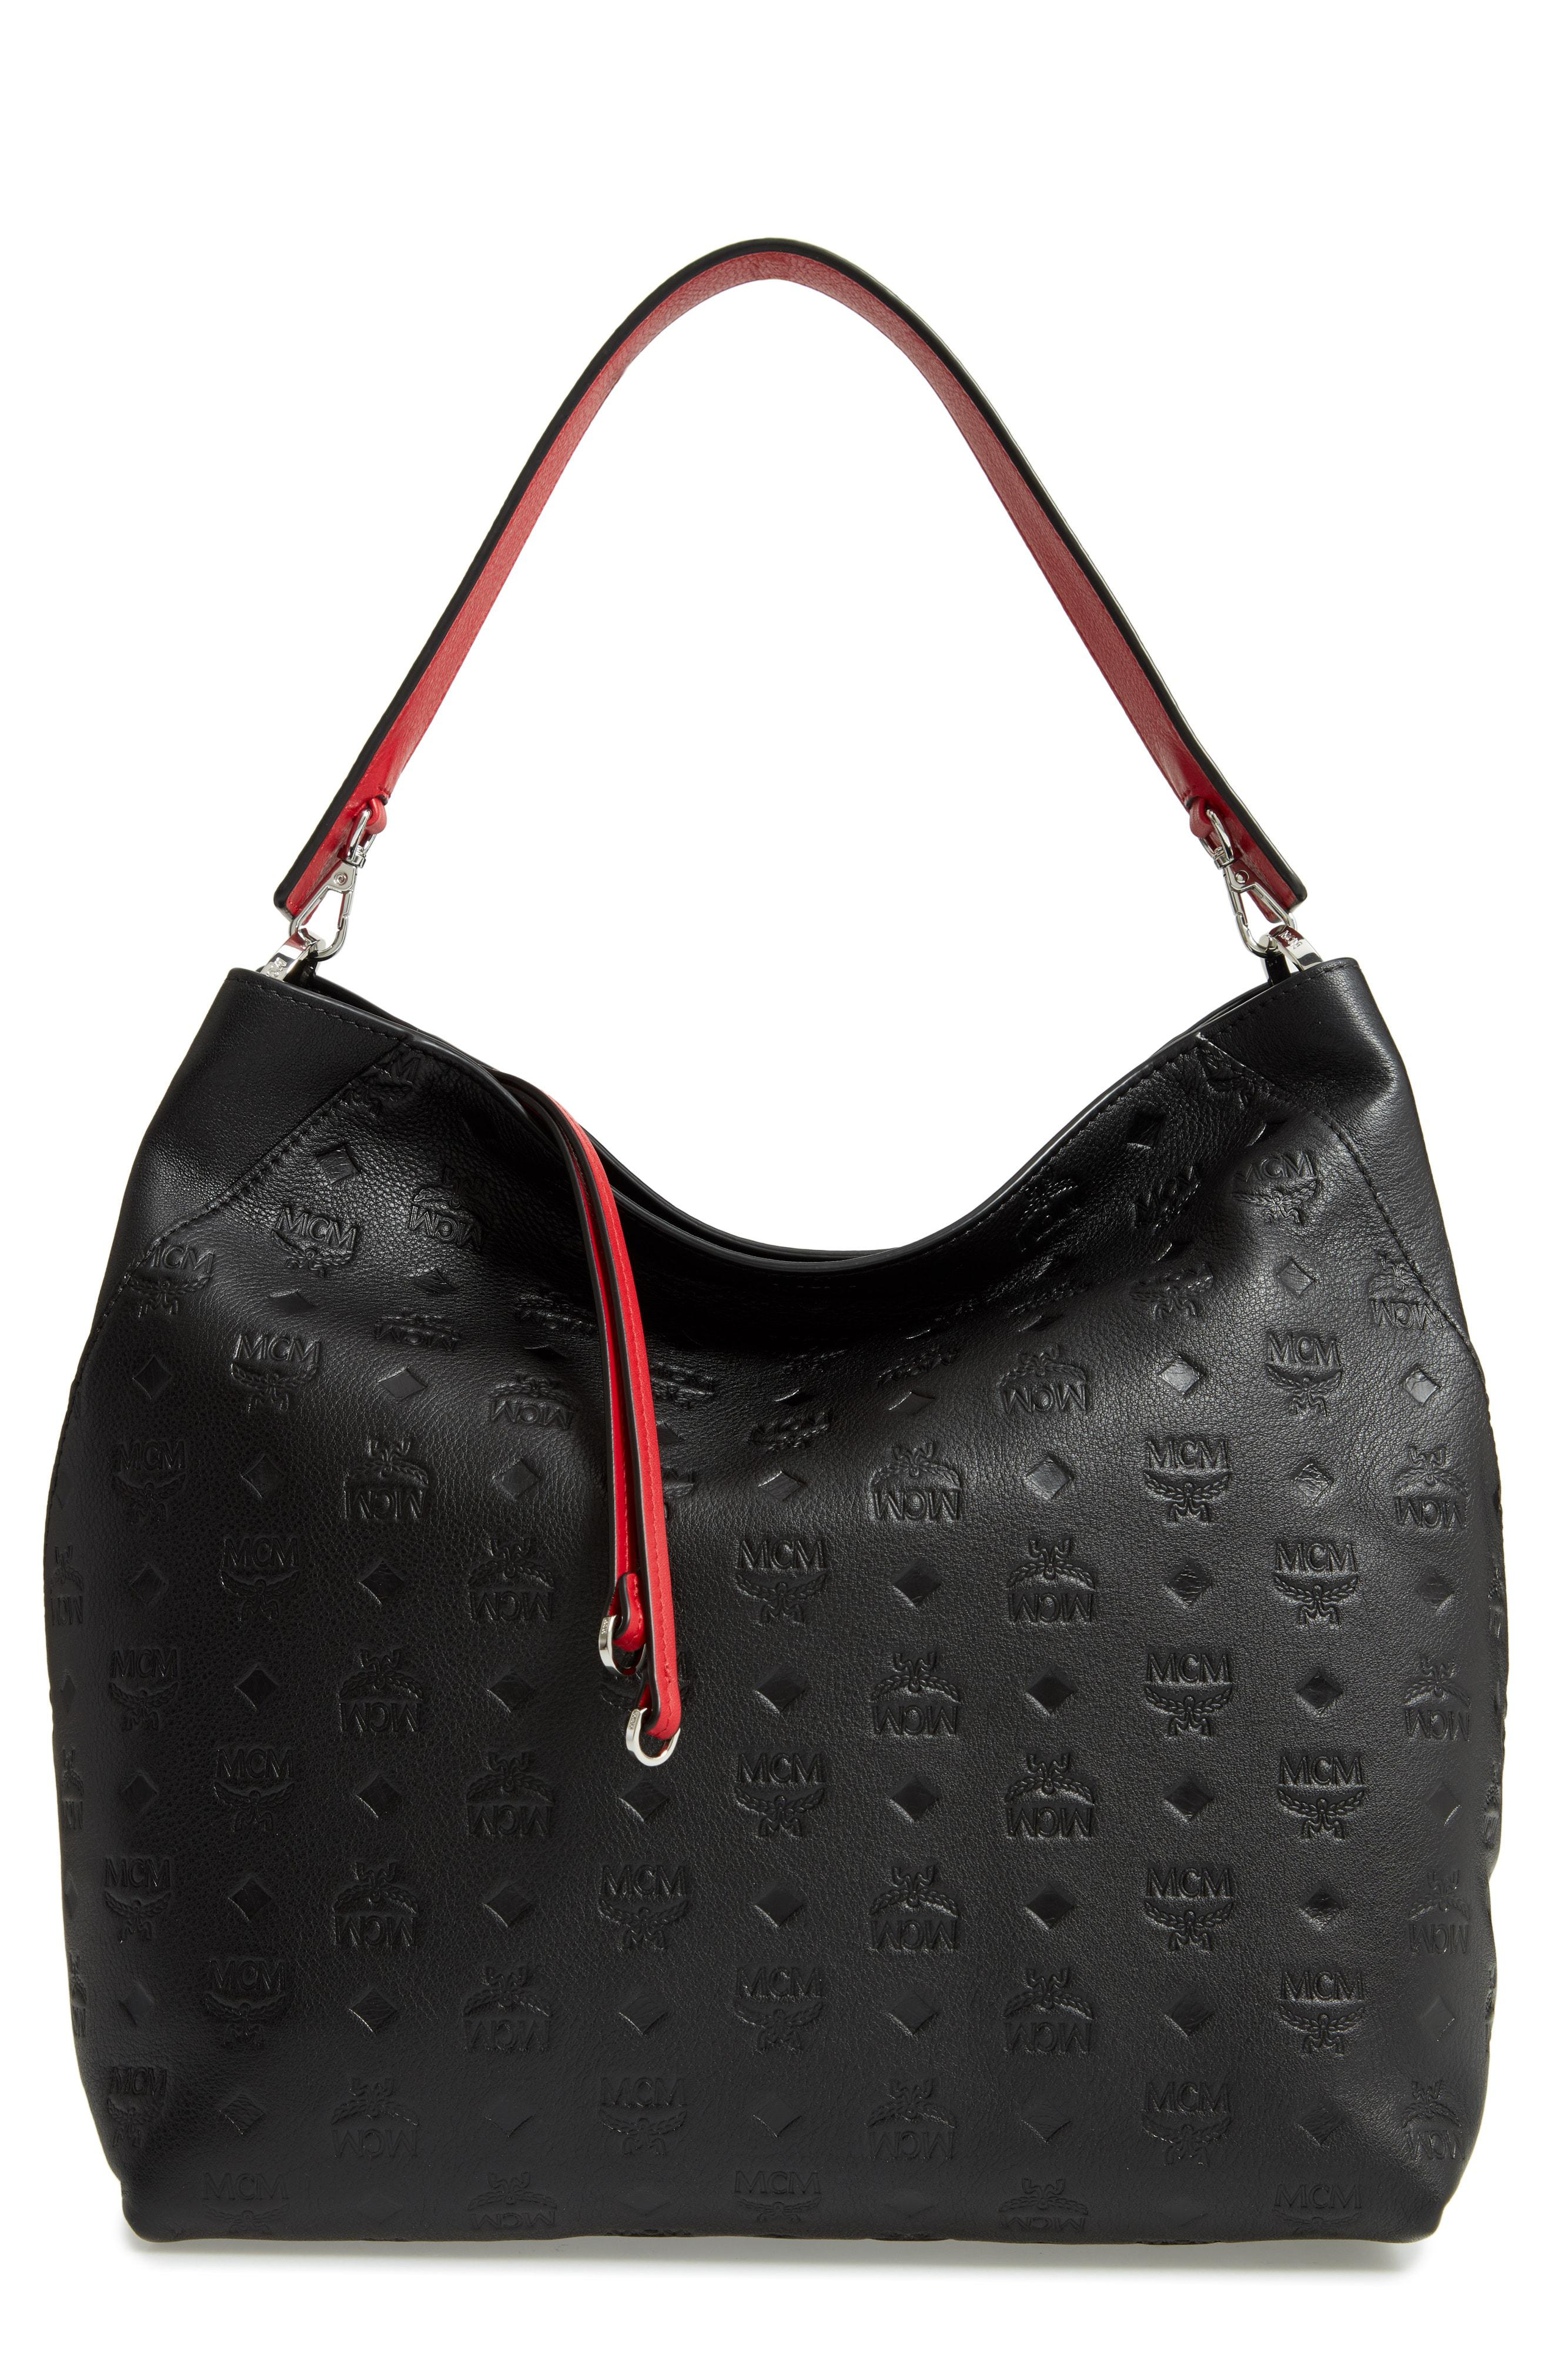 640e522347ba Lyst - MCM Klara Monogrammed Leather Hobo Shoulder Bag in Black